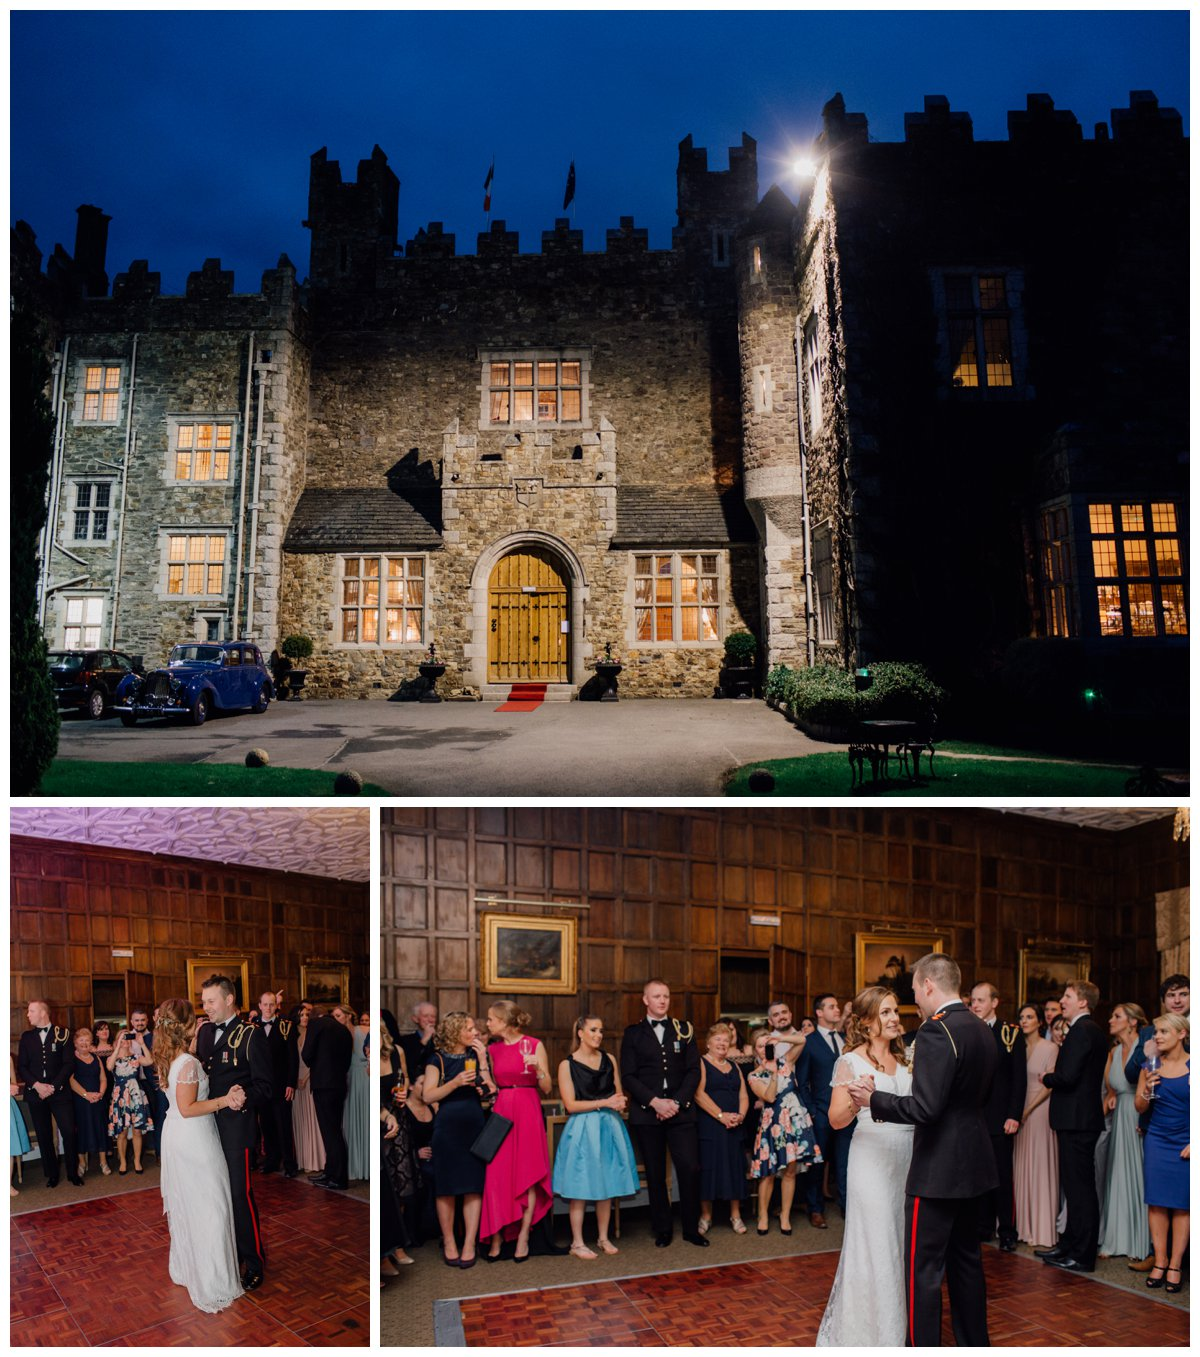 waterford-castle-wedding-photography-elegant-wedding-invitations-ireland